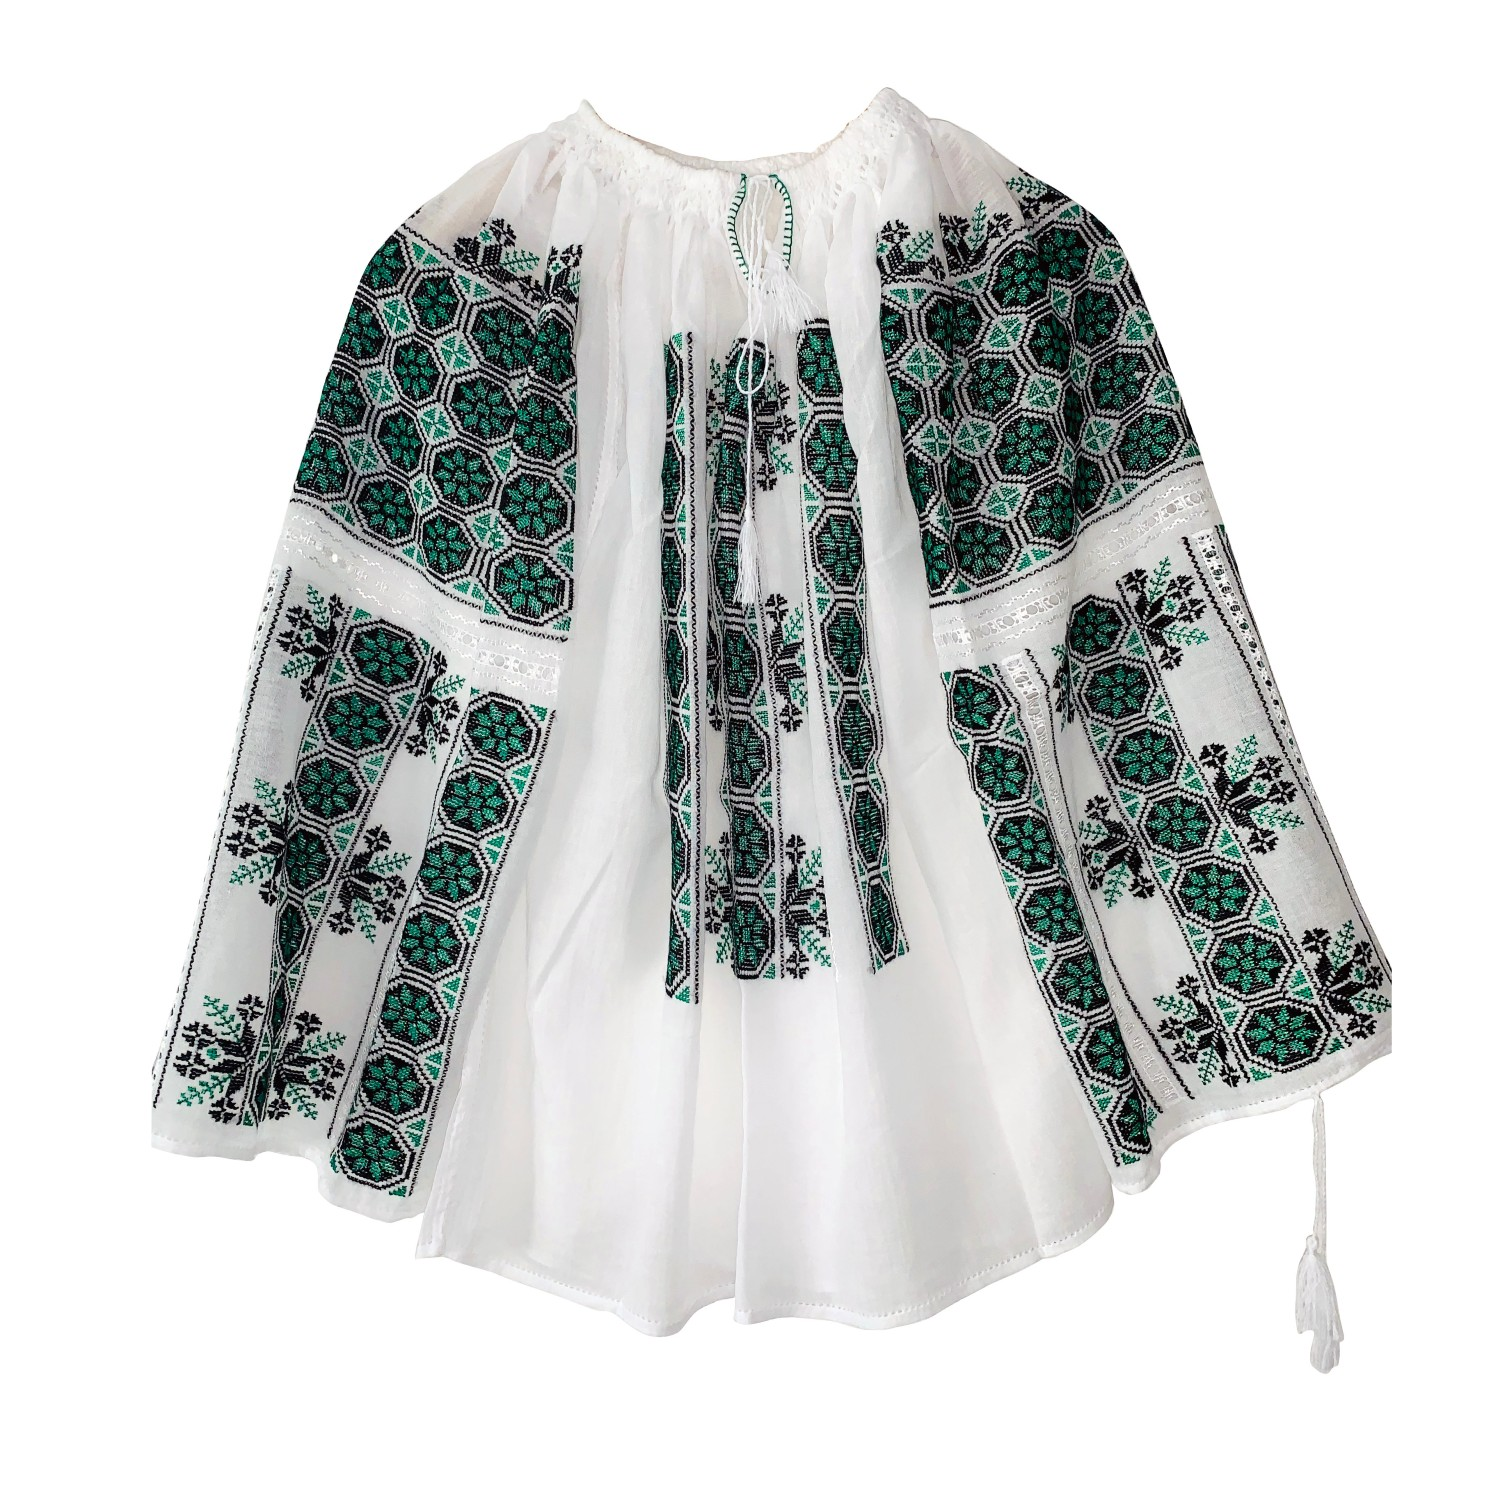 IE TRADIȚIONALĂ COD 10_Ie_Blouse_hand made_traditional_RafGallery_romanian_art_VR_gallery